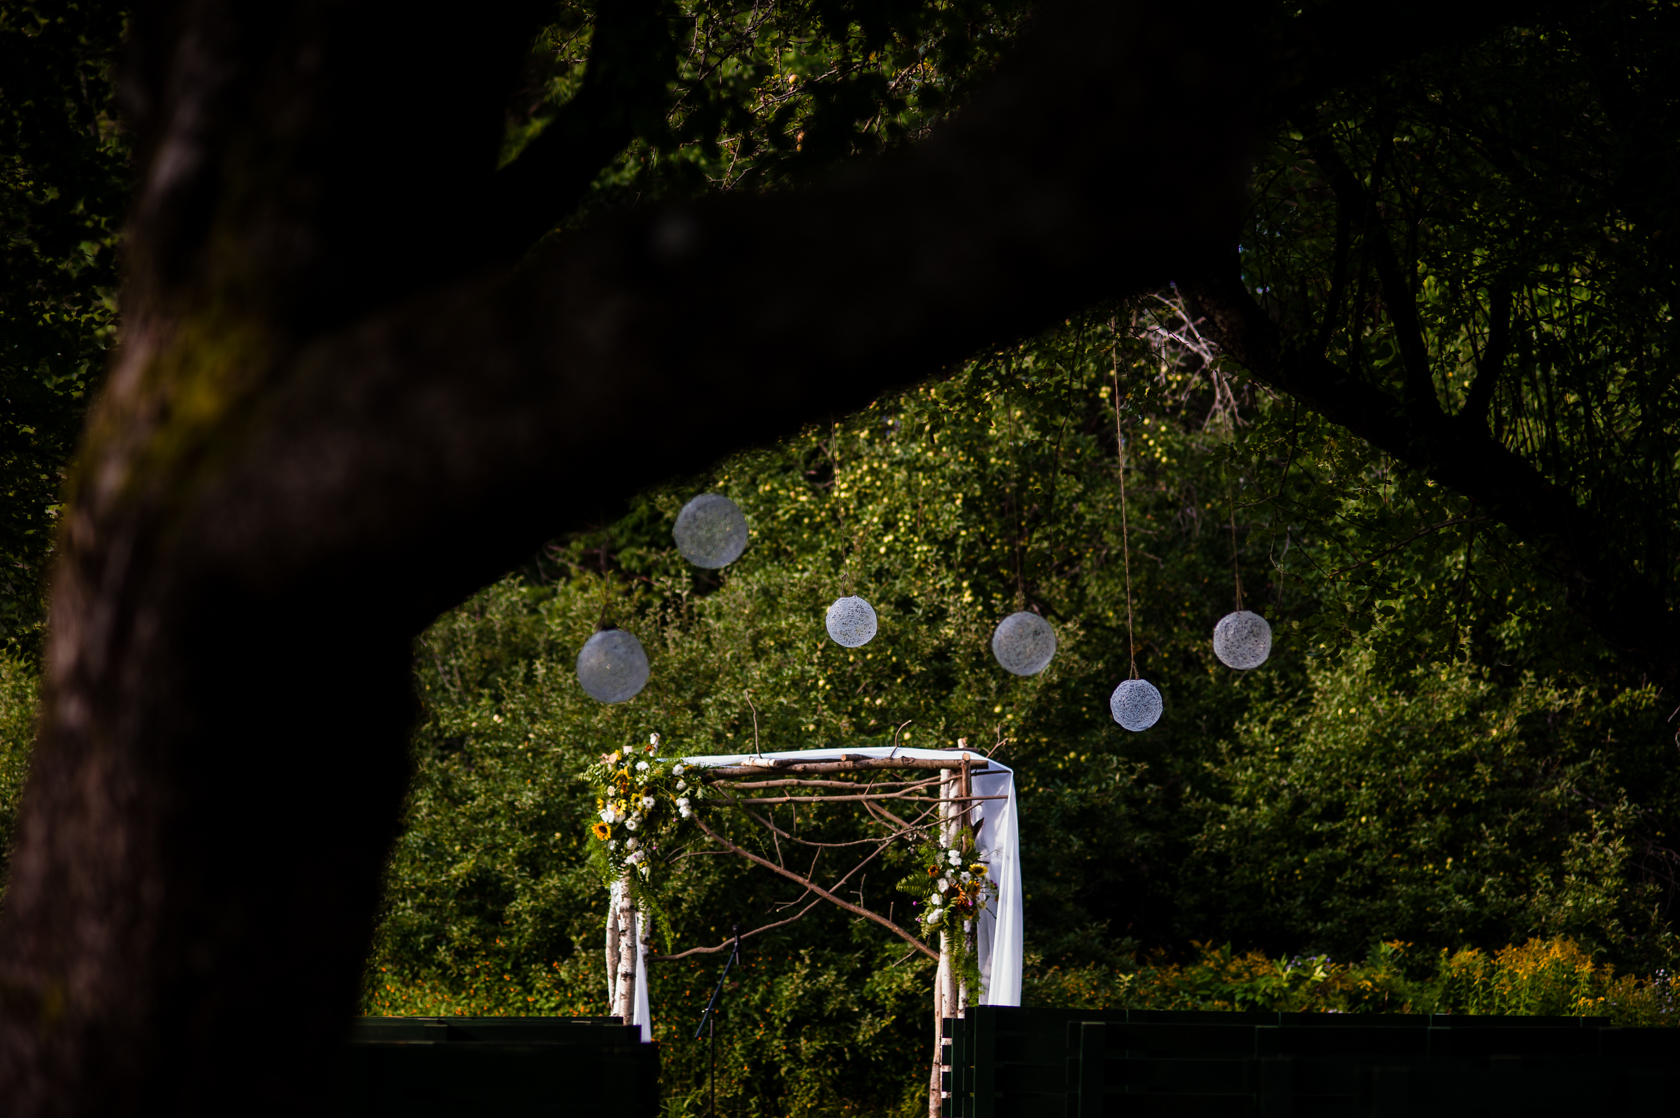 beautiful ceremony location under apple trees with beautiful handmade hanging globes